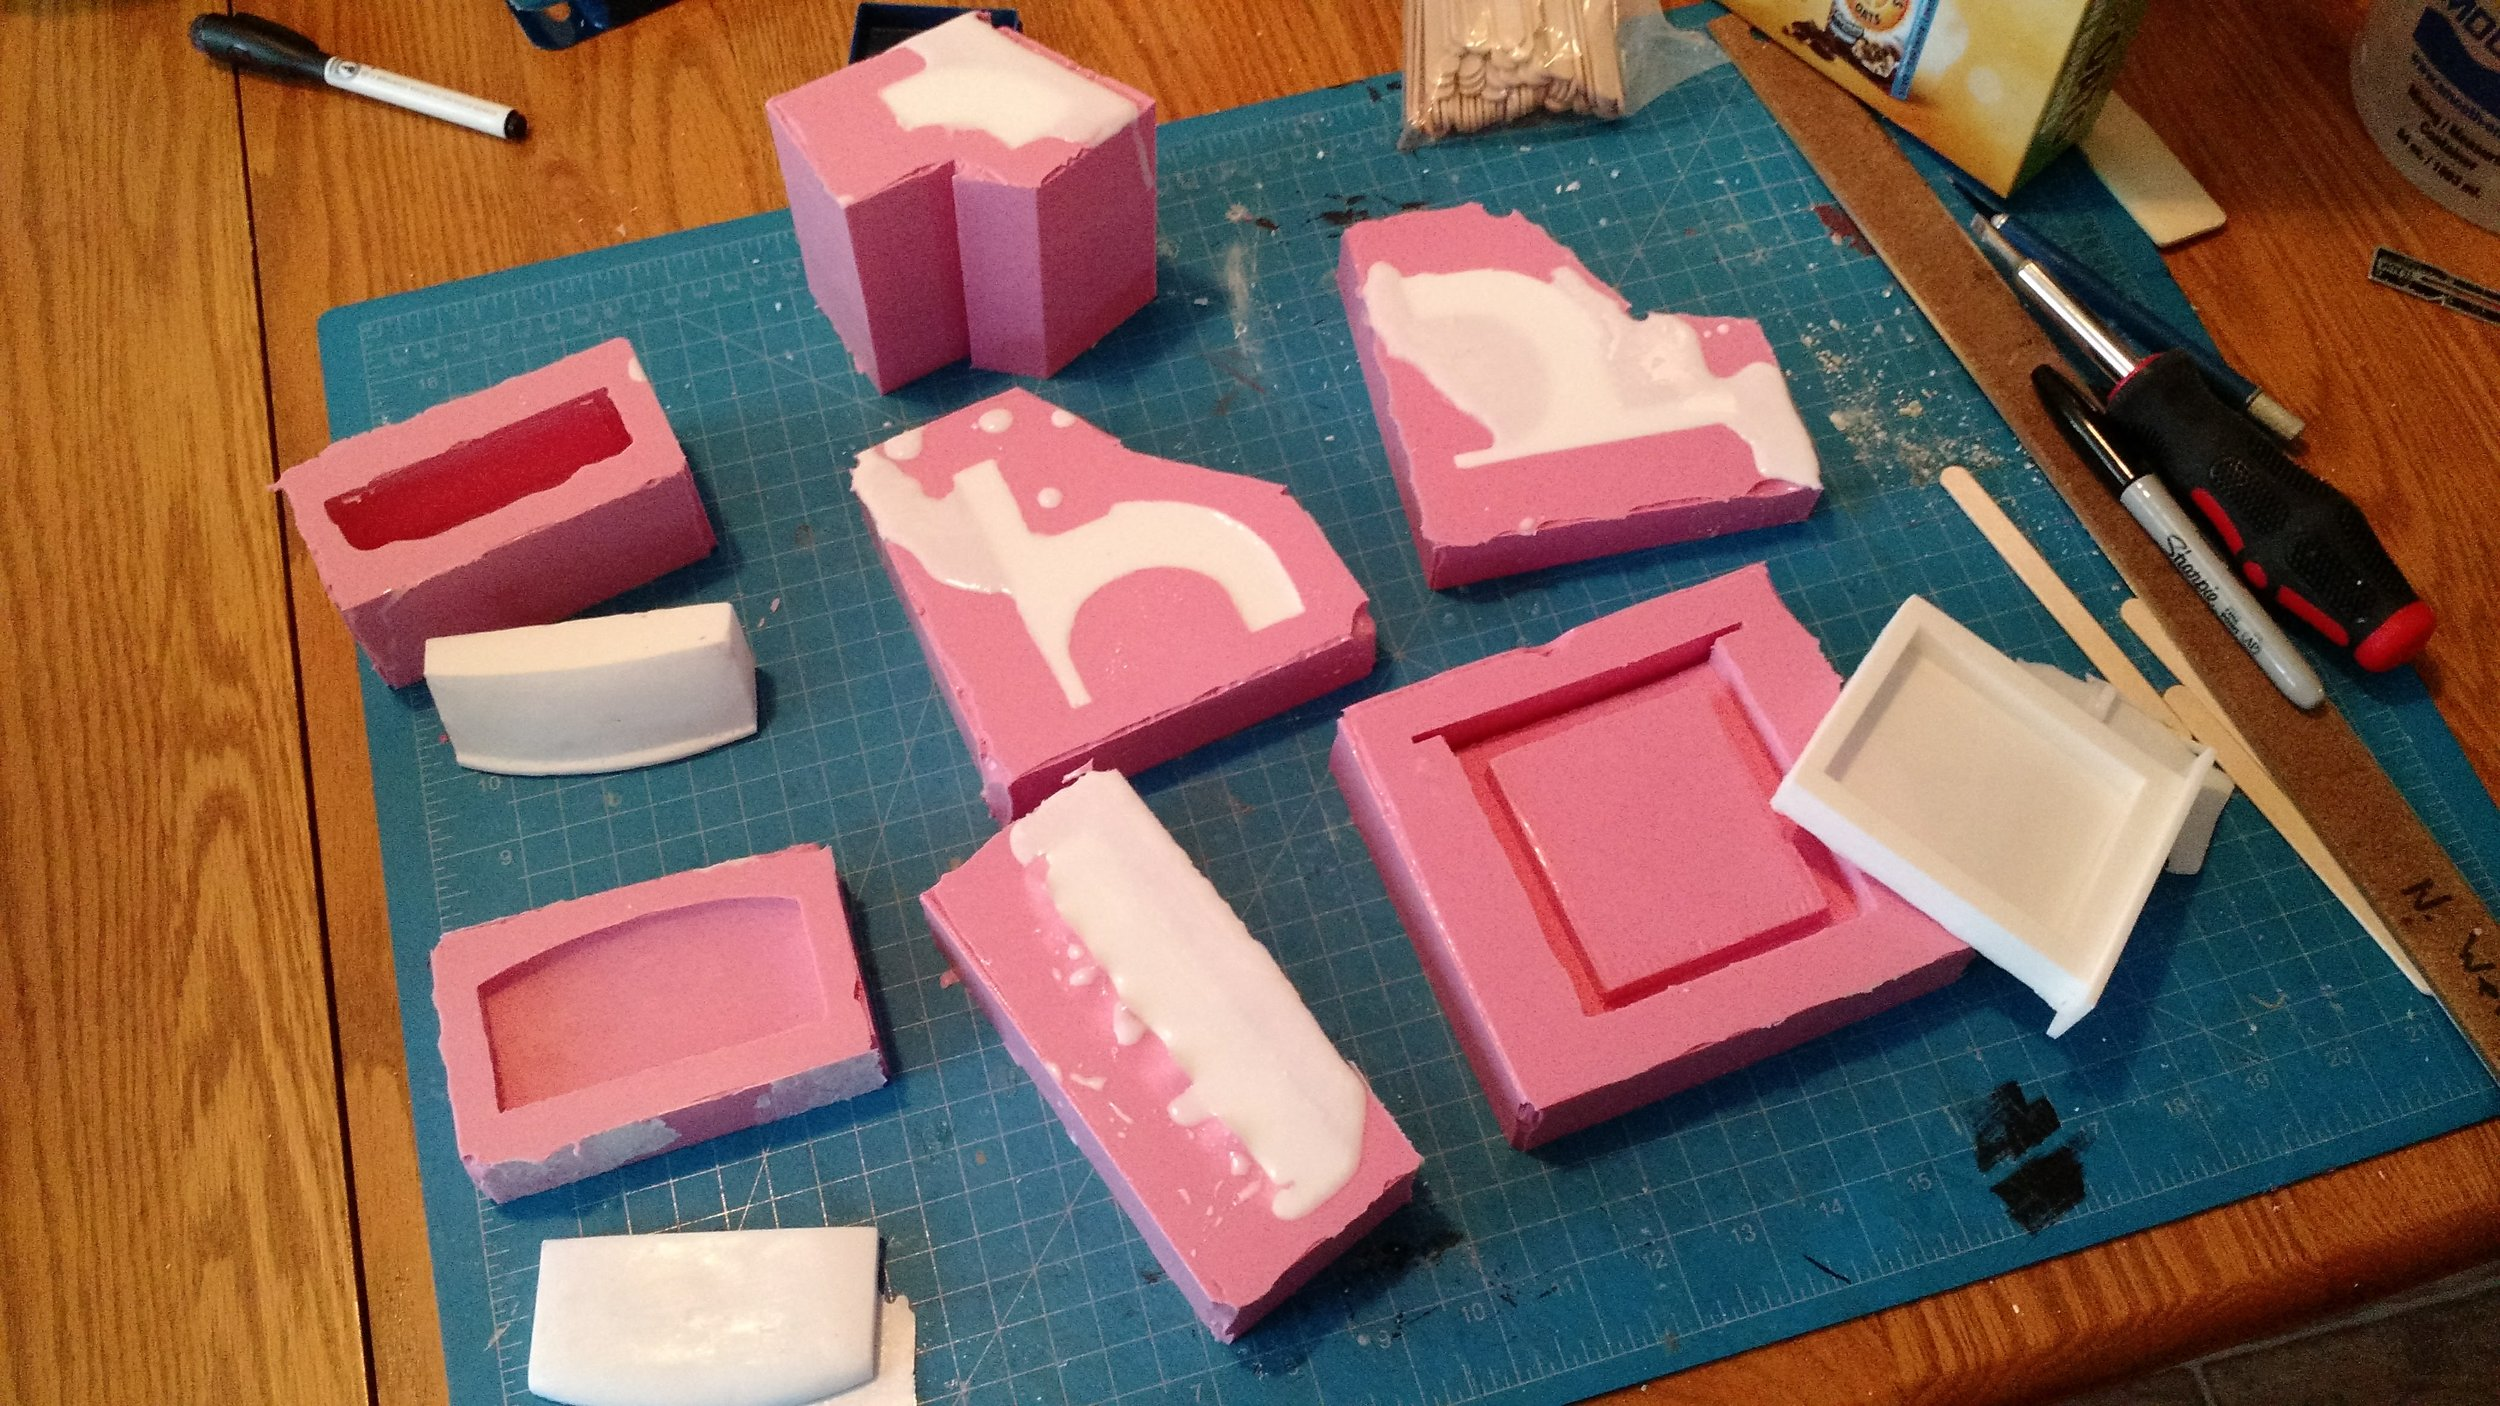 prying the parts out of their molds